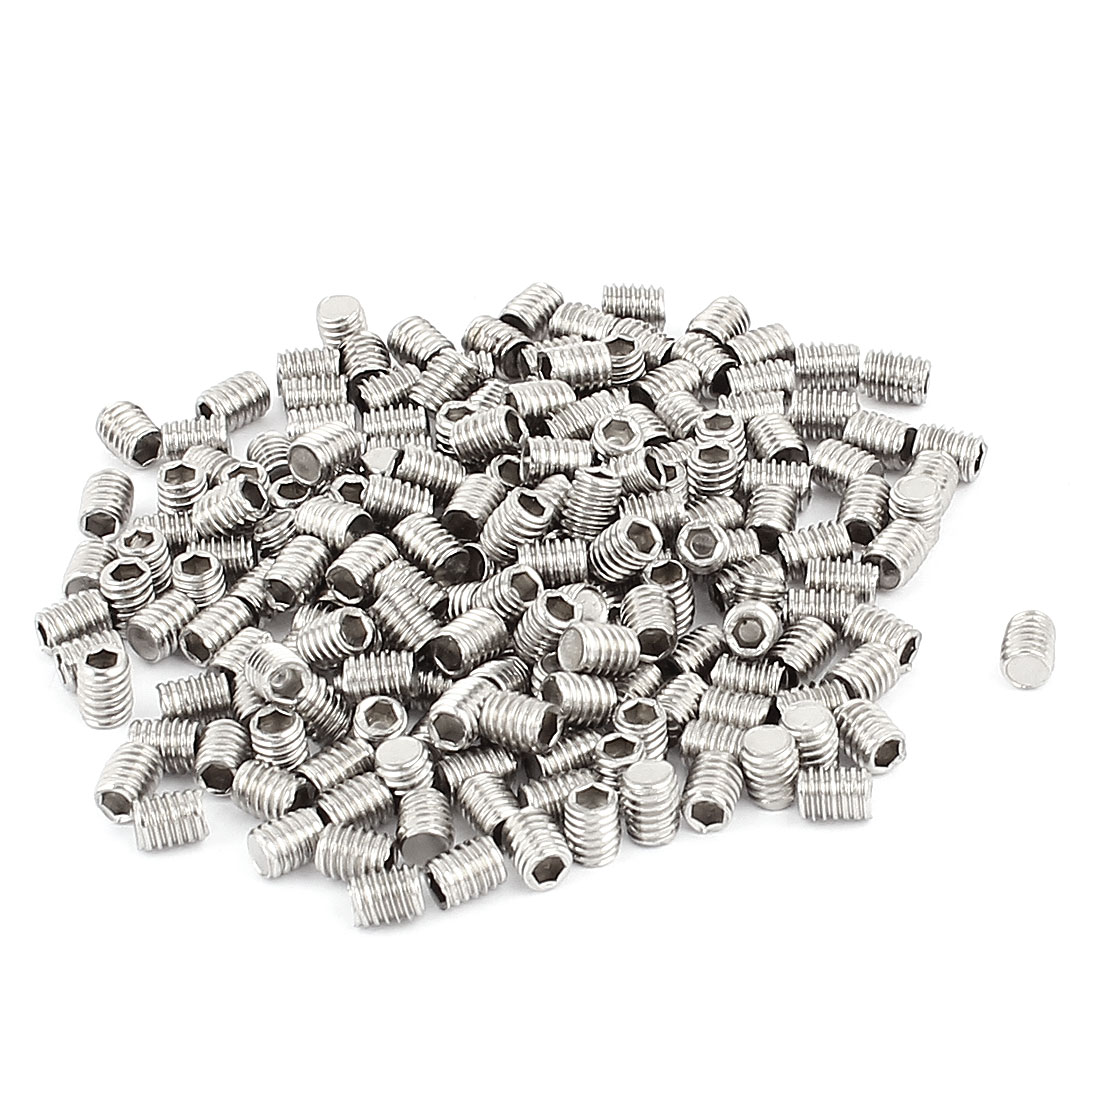 200pcs 304 Stainless Steel M4 Thread Hex Socket Flat Point Set Grub Screws